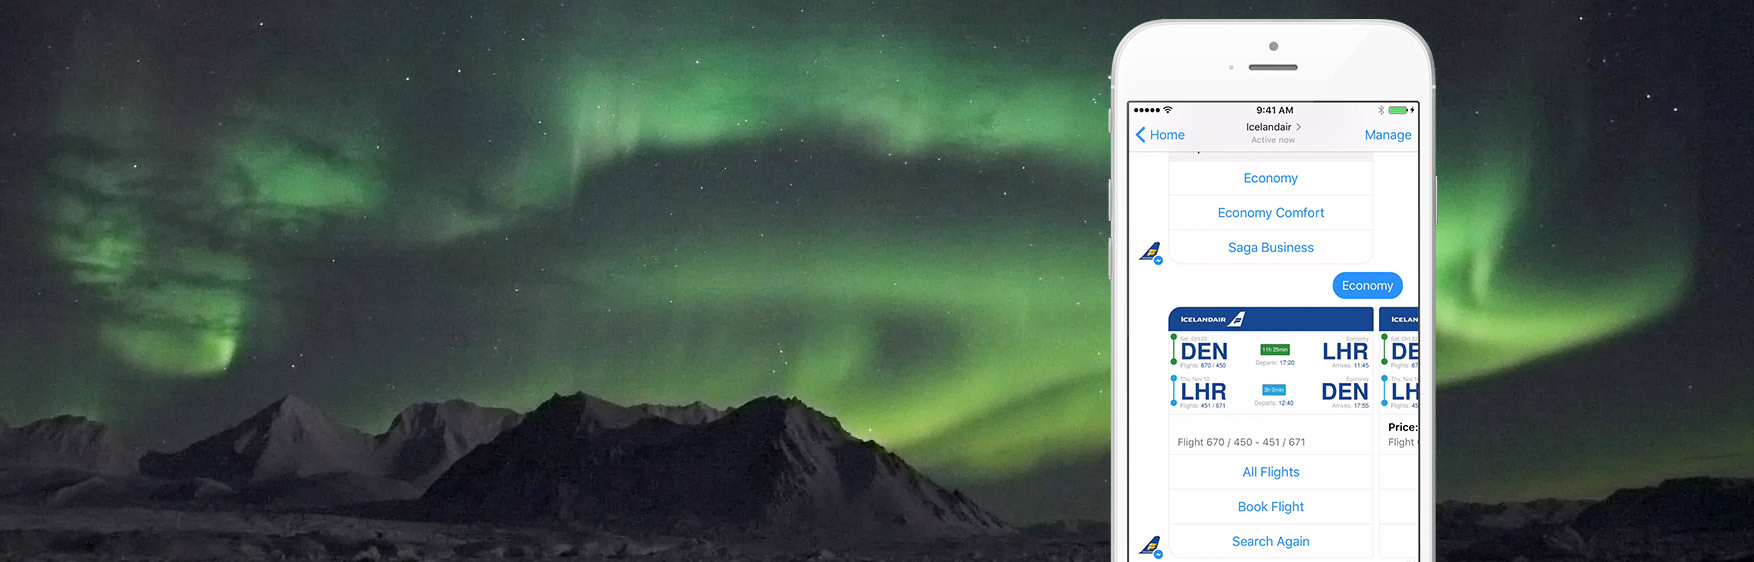 Icelandair's Facebook Messenger